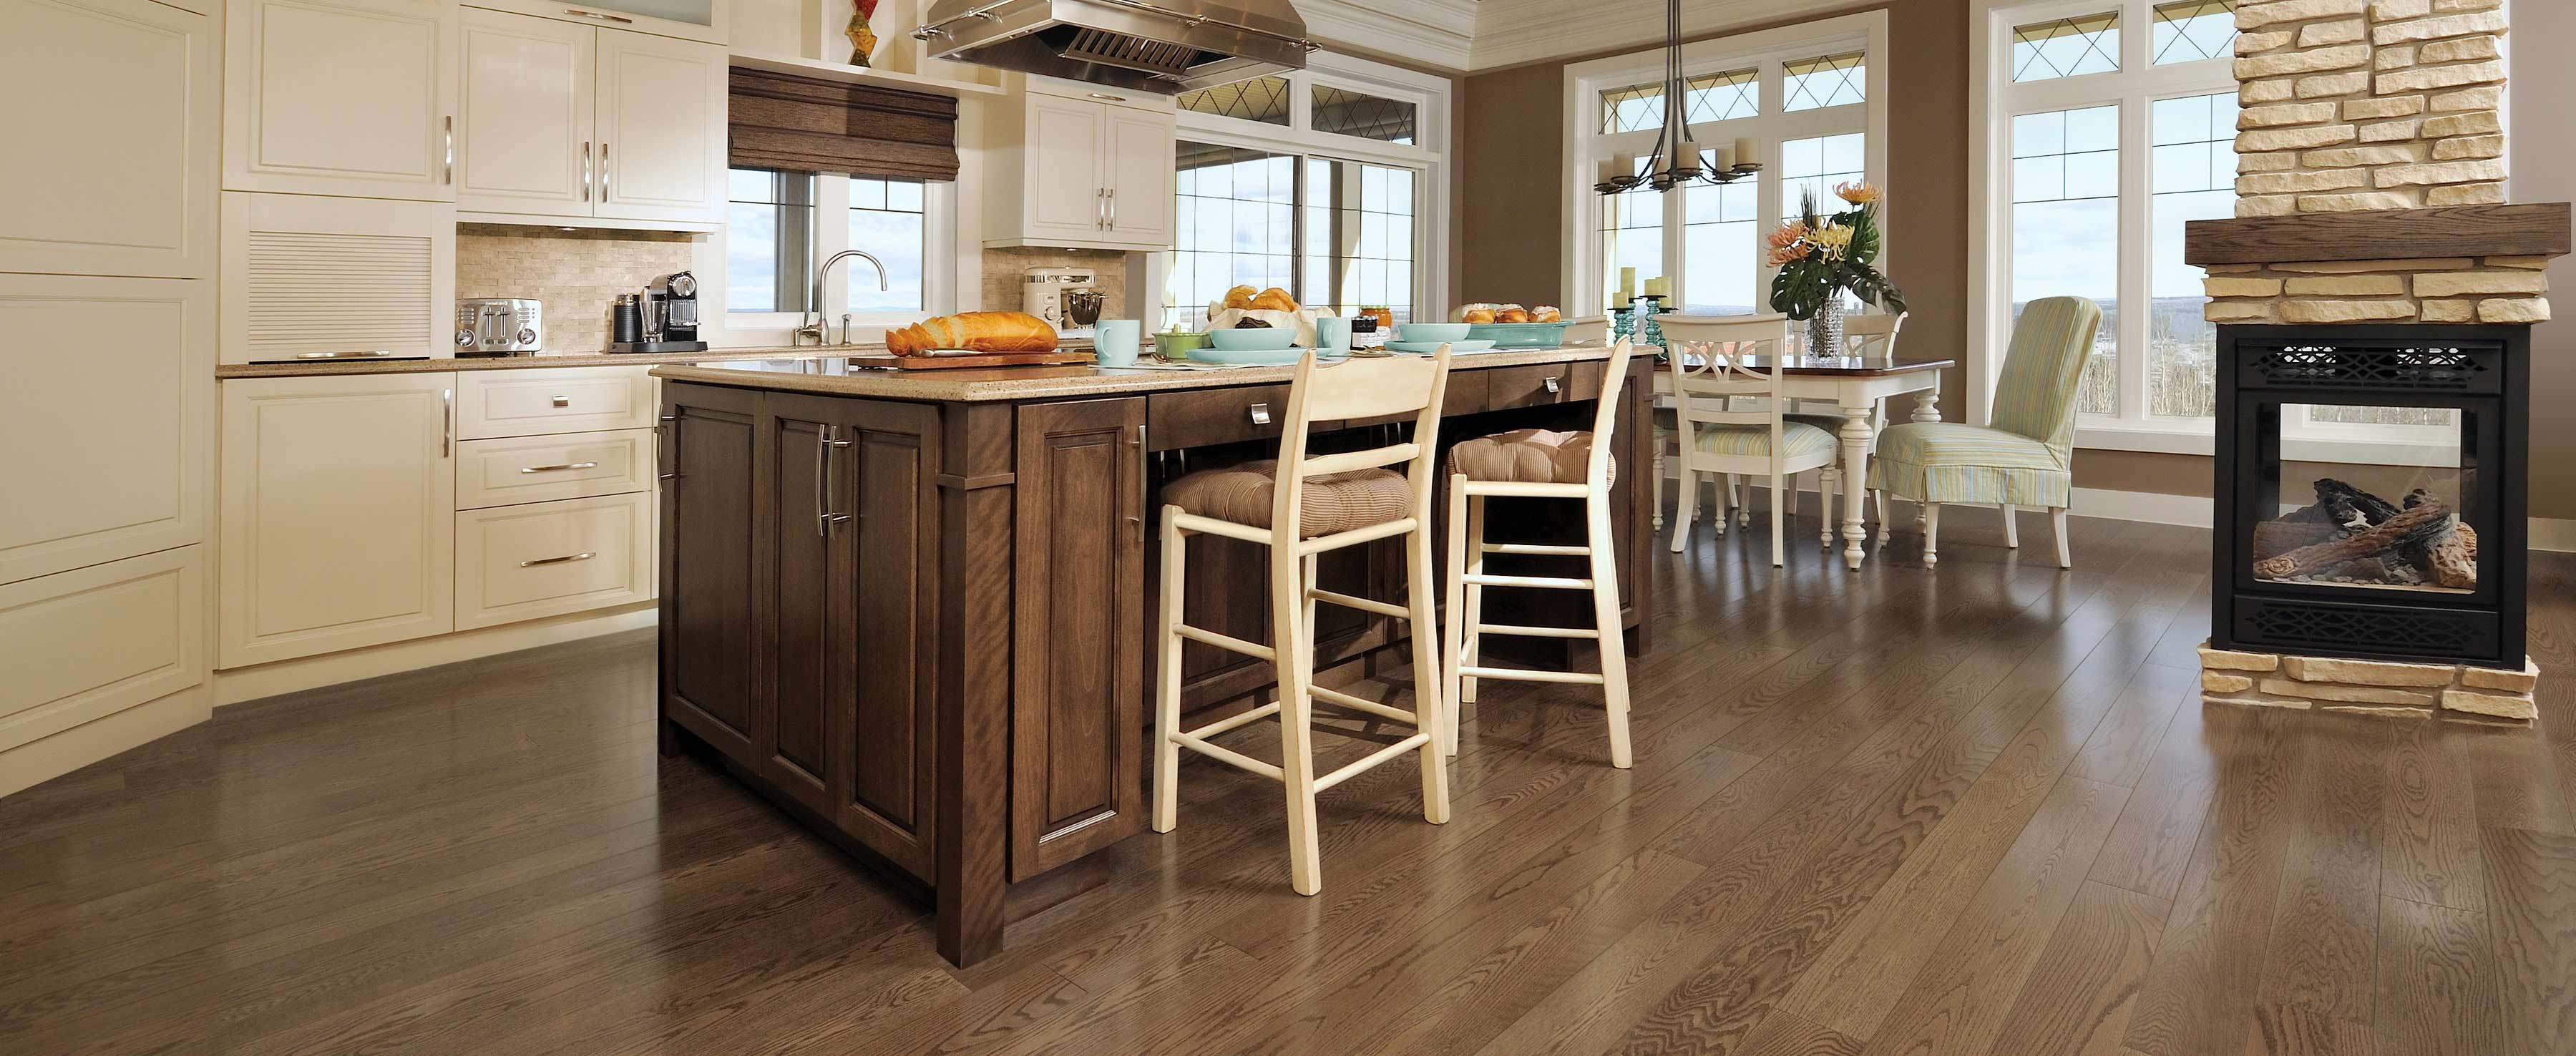 Best Engineered Hardwood Flooring Brand Review Top 5 Popular